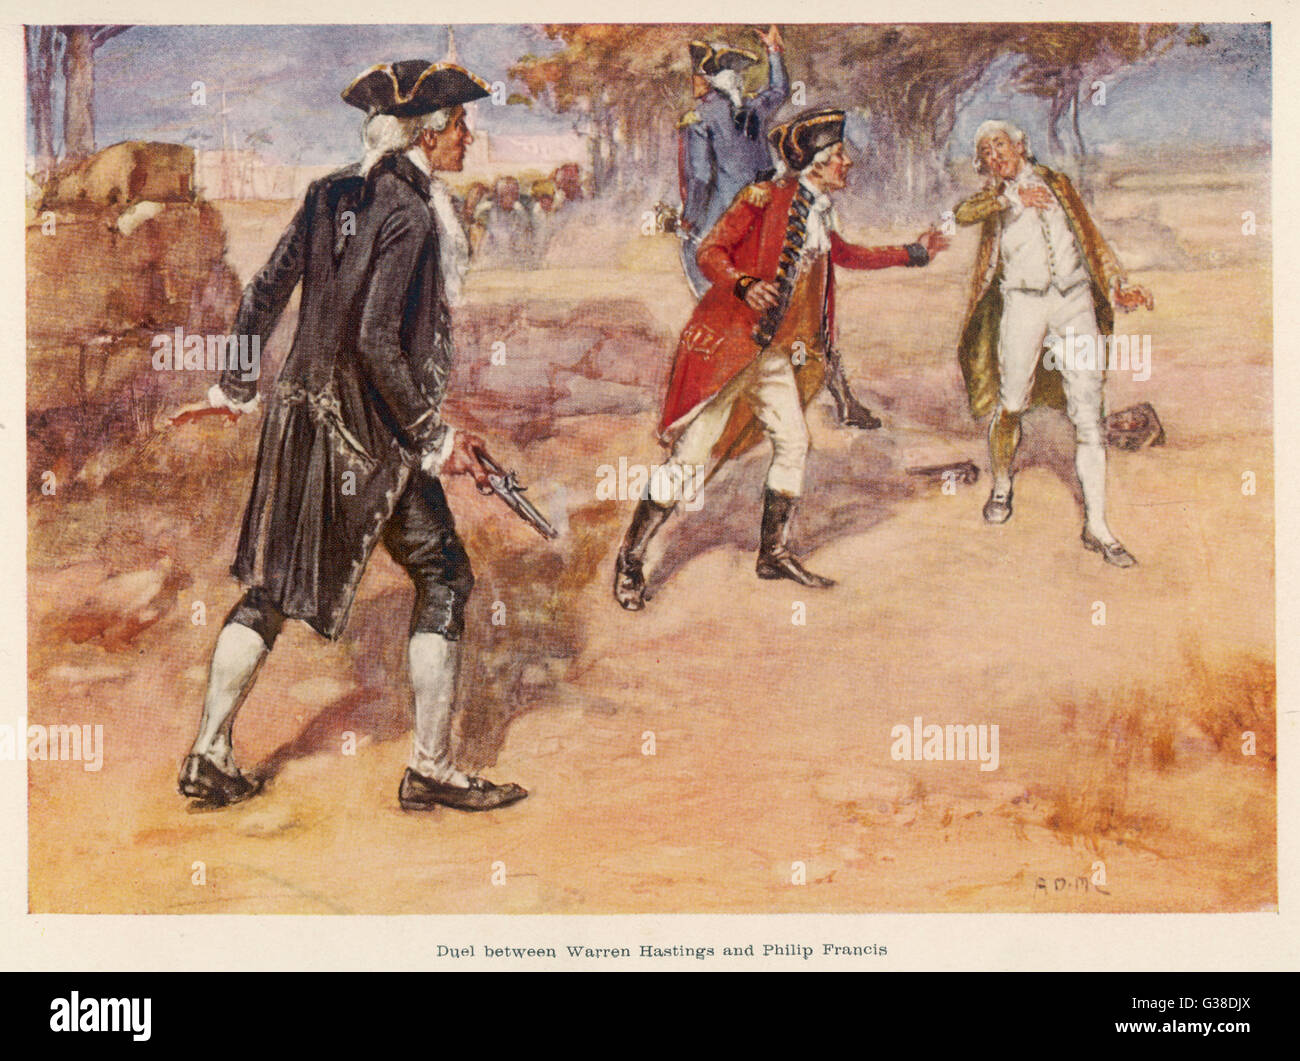 HASTINGS v FRANCIS Warren Hastings wounds his  opponent Philip Francis, in  India       Date: 17 August 1780 - Stock Image